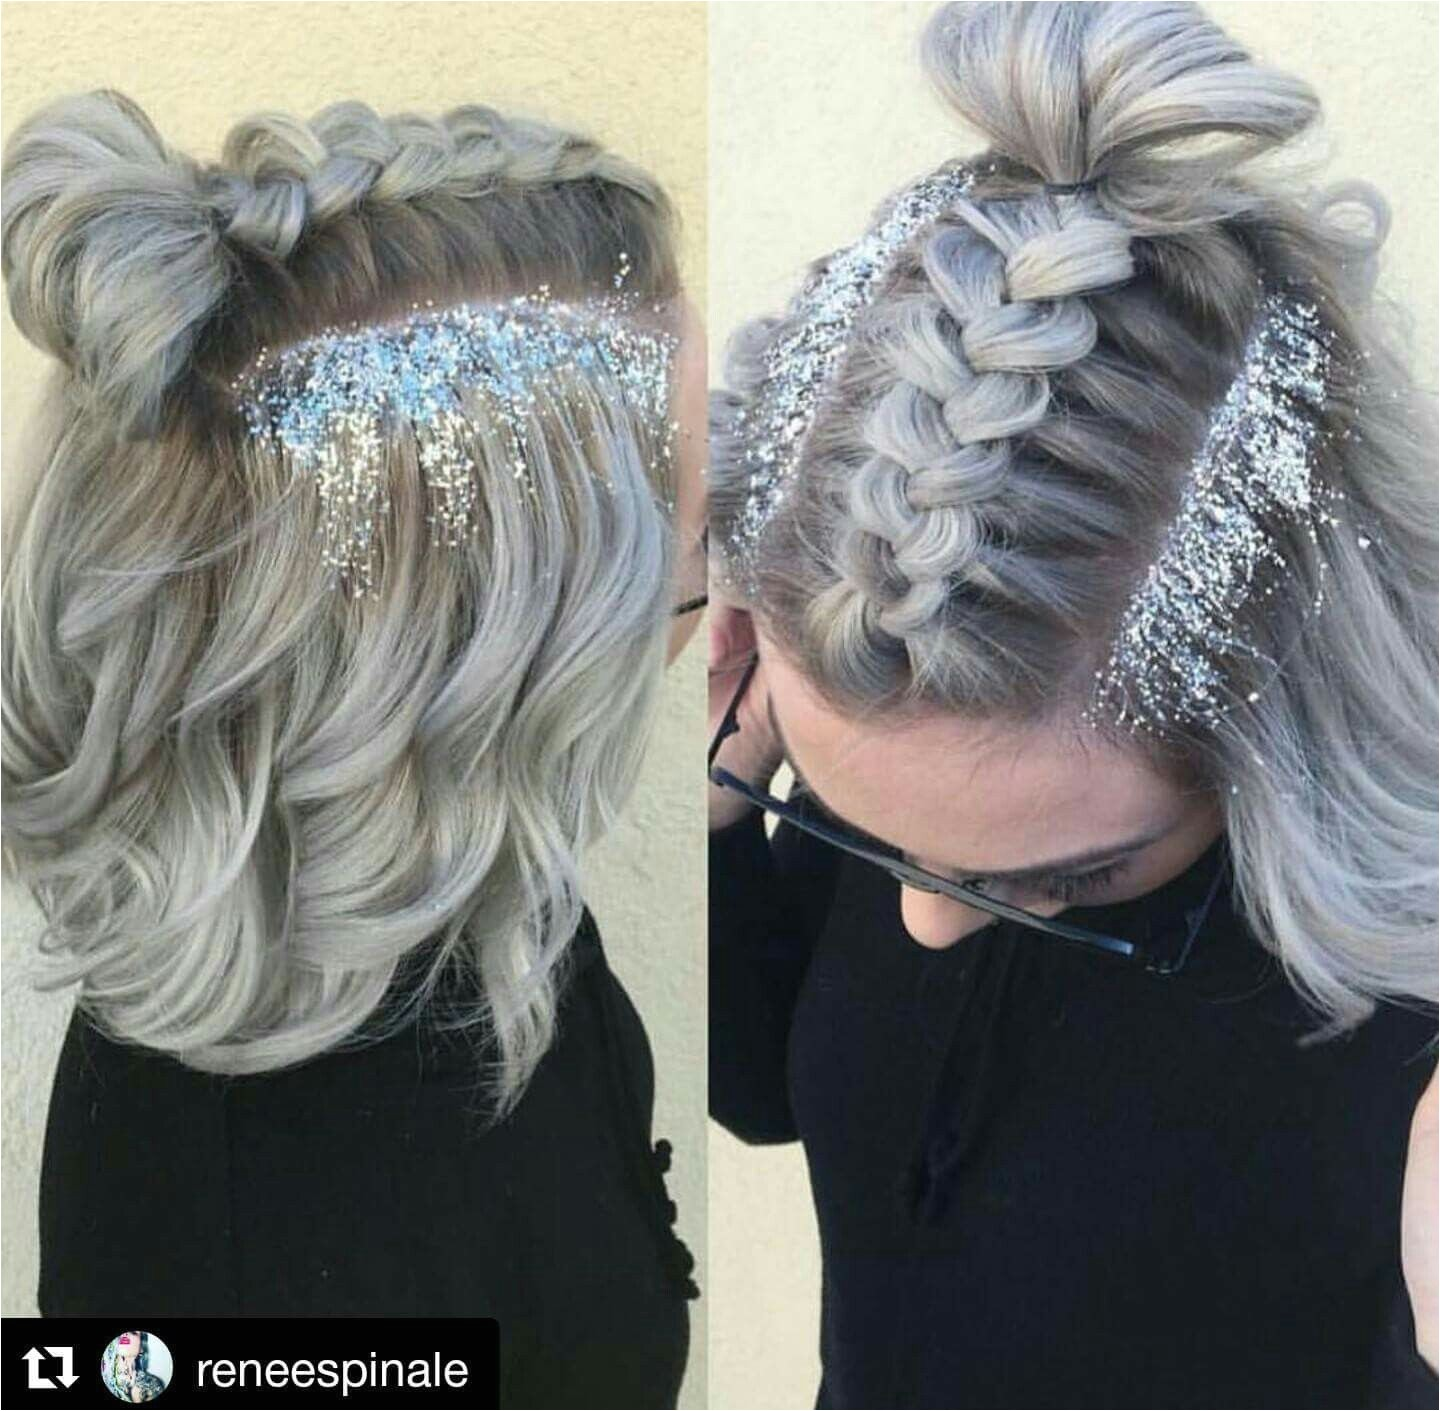 Hairstyle Ideas for Raves Luxury Glitter Roots and Braid Hair Nails Makeup Skin